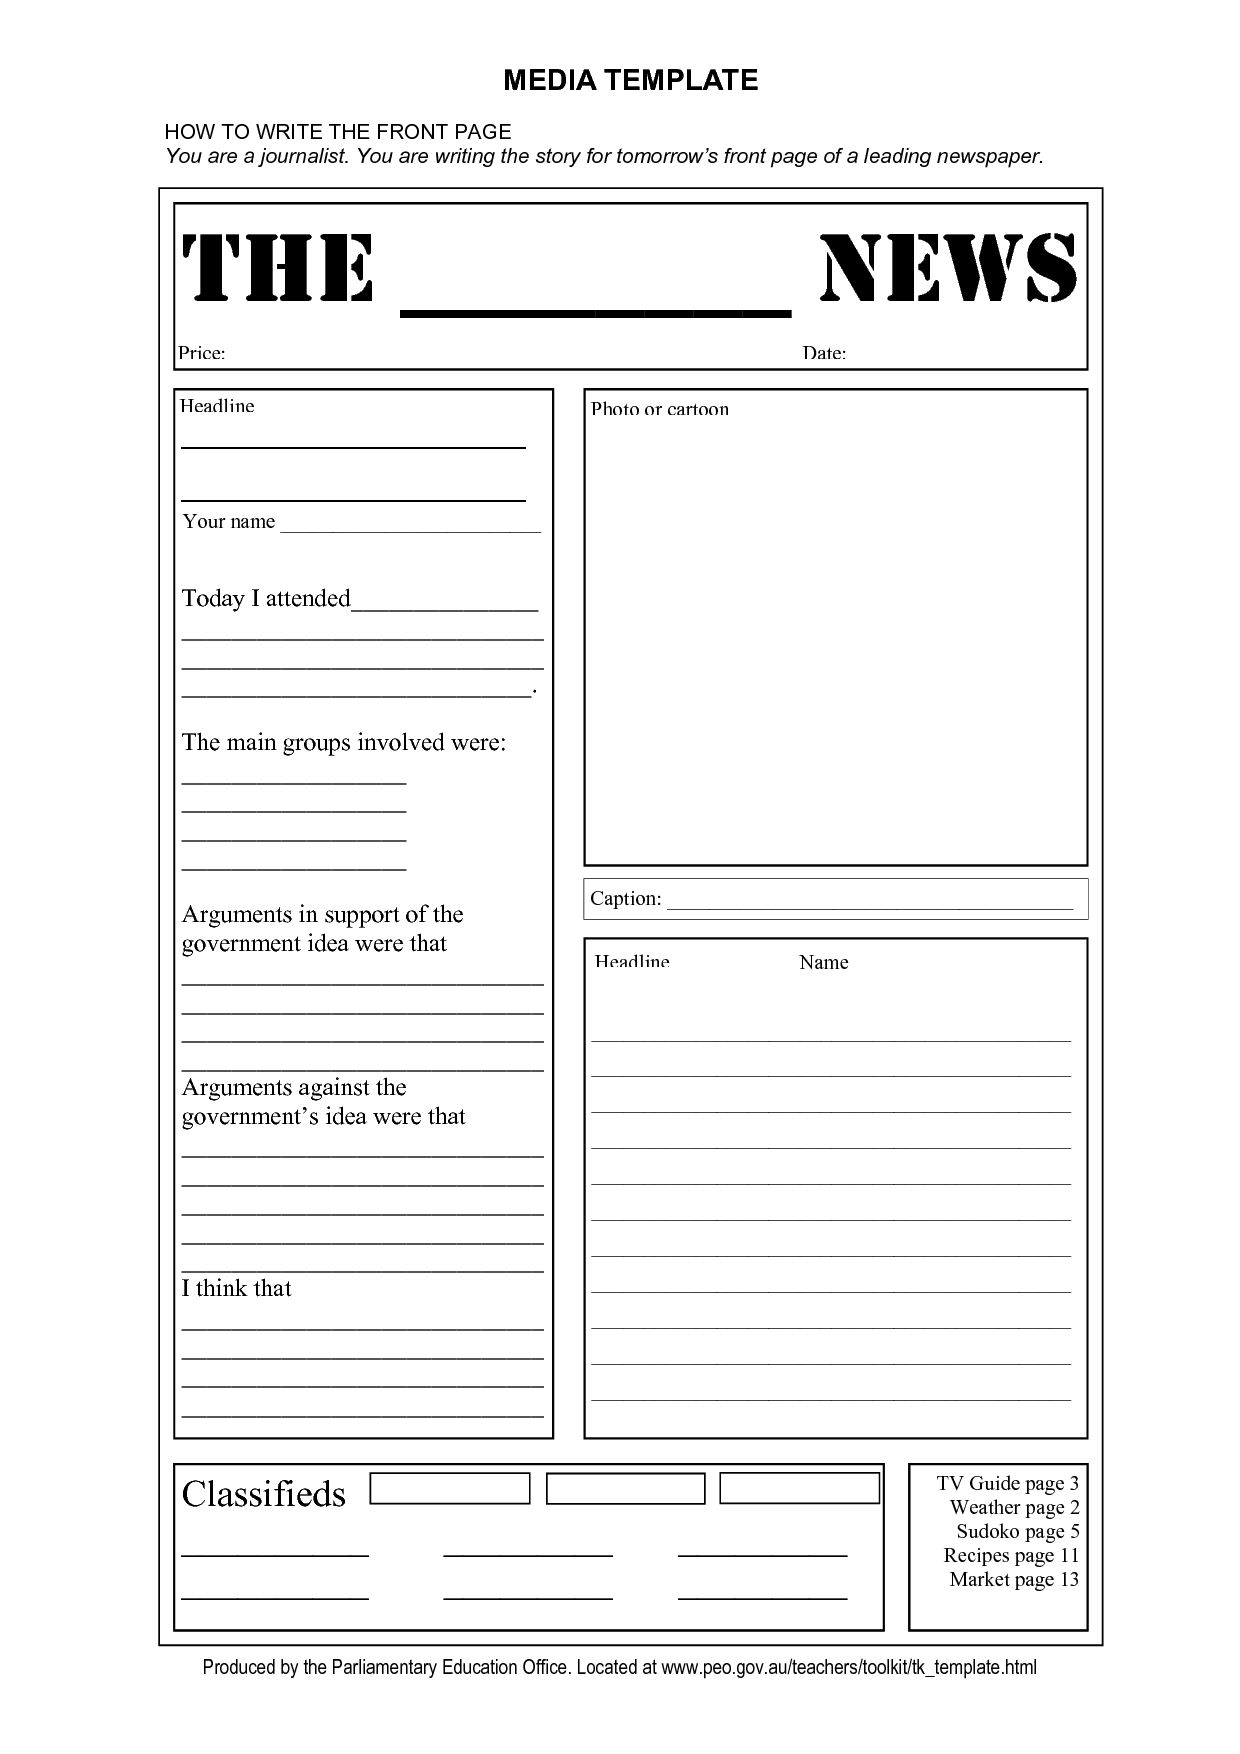 free tag template | newspaper front page template doc | 60th